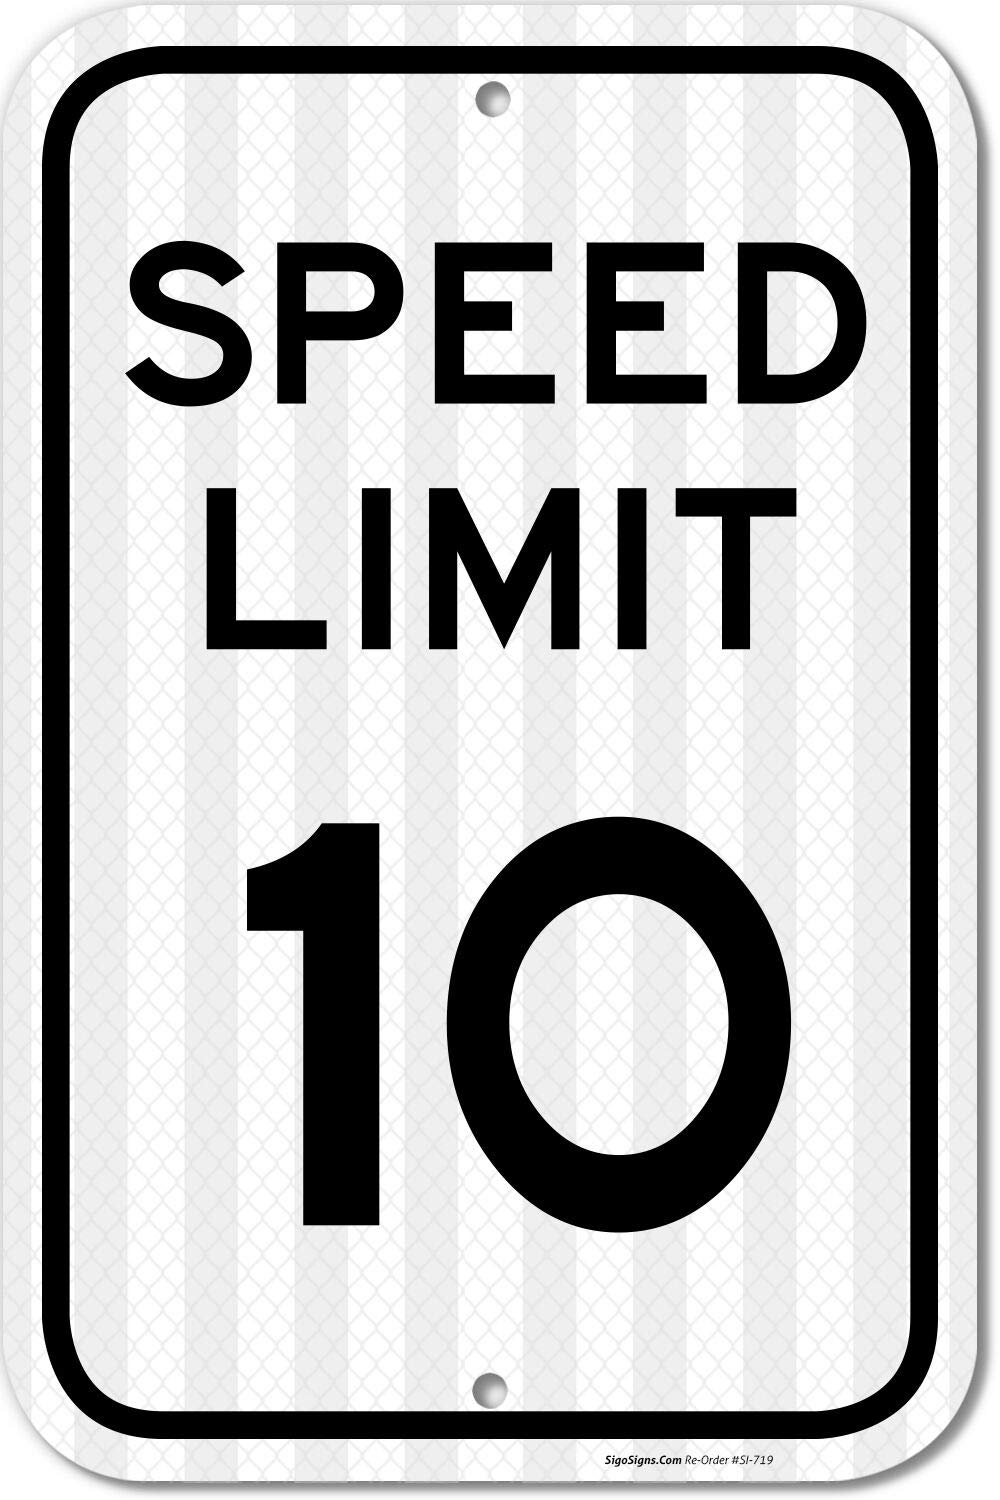 Speed Limit 10 MPH Sign, 12x18 3M Reflective (EGP) Rust Free .63 Aluminum, Easy to Mount Weather Resistant Long Lasting Ink, Made in USA by SIGO Sign